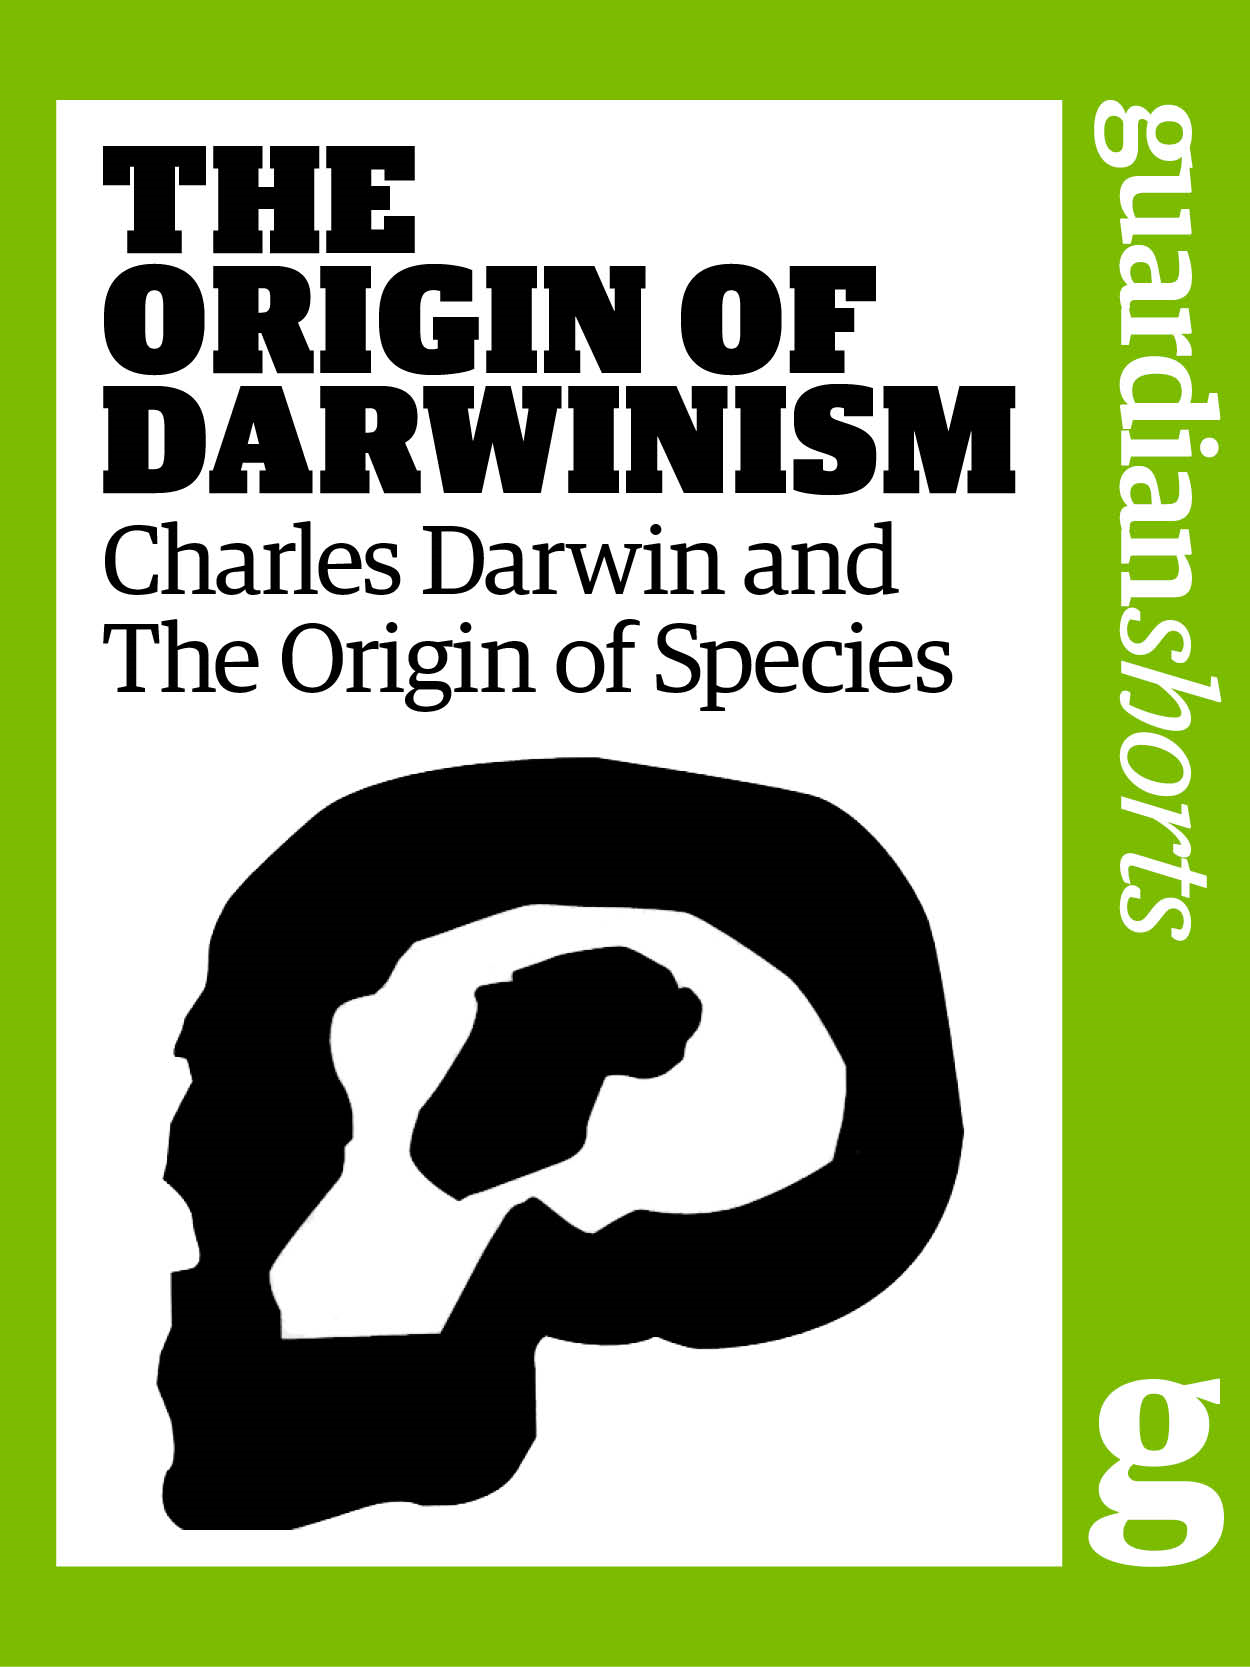 The Origin of Darwinism